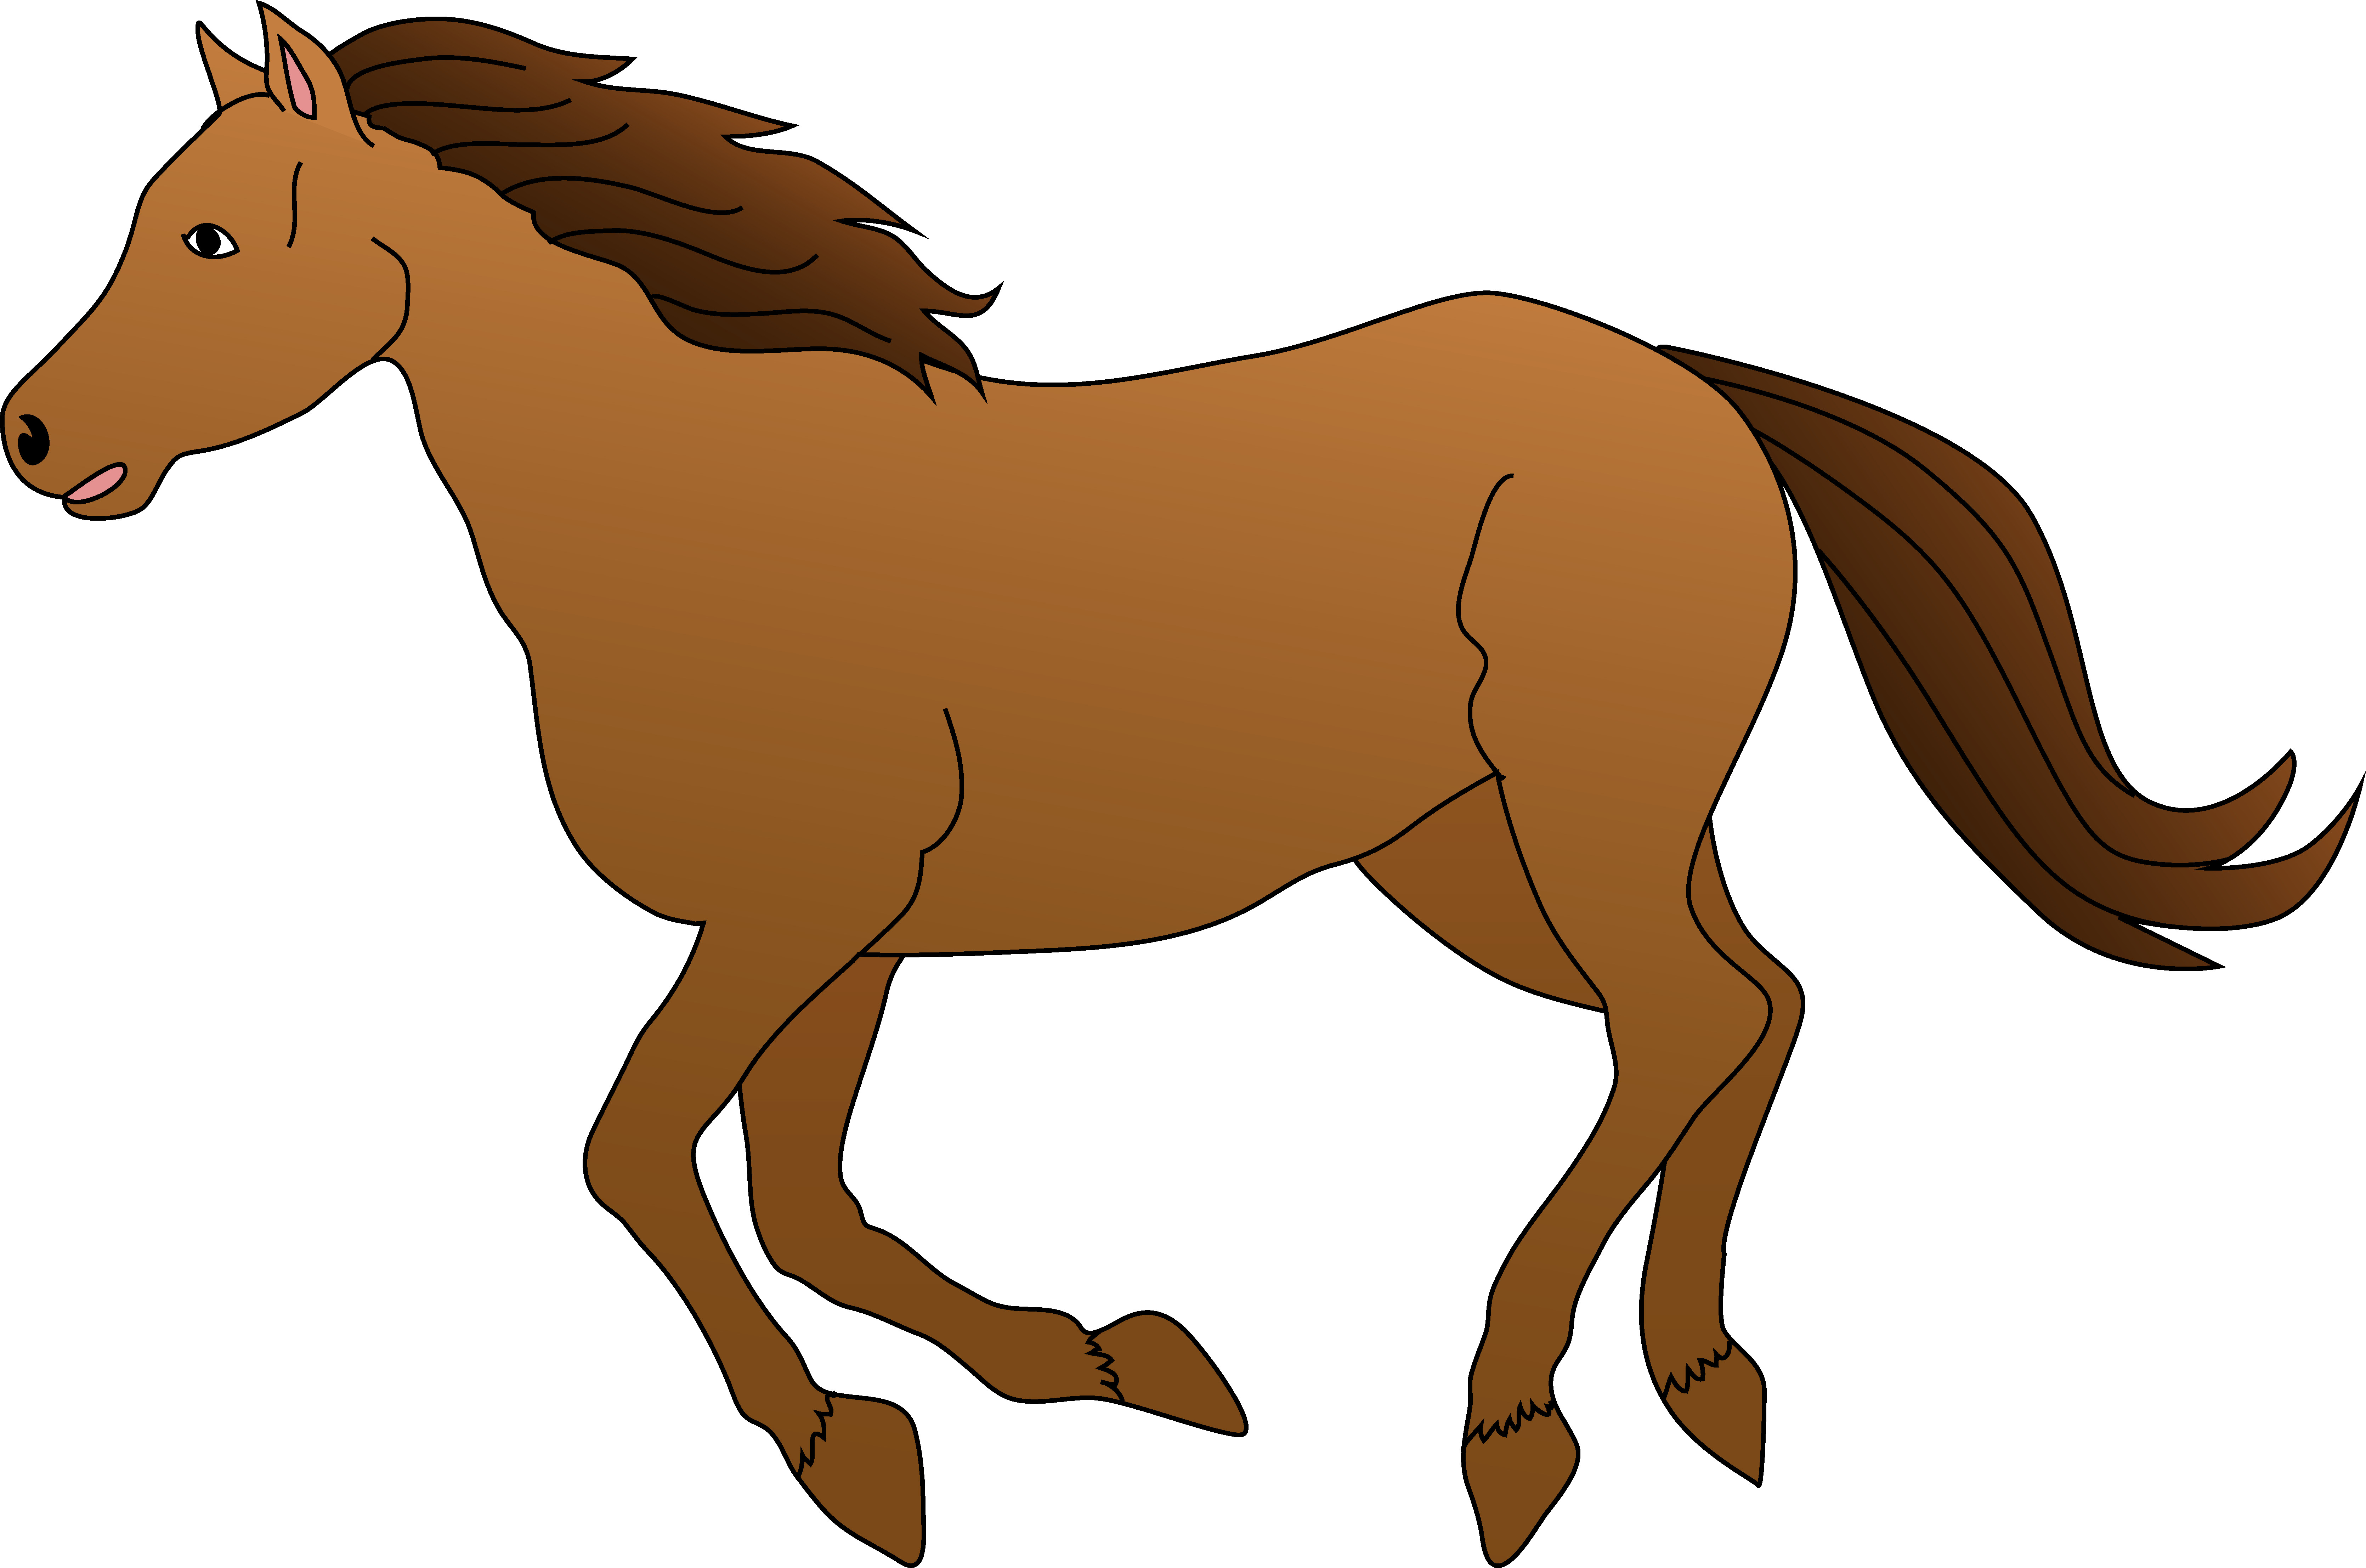 running horse clipart at getdrawings com free for personal use rh getdrawings com free horse clipart images mustang horse clipart images